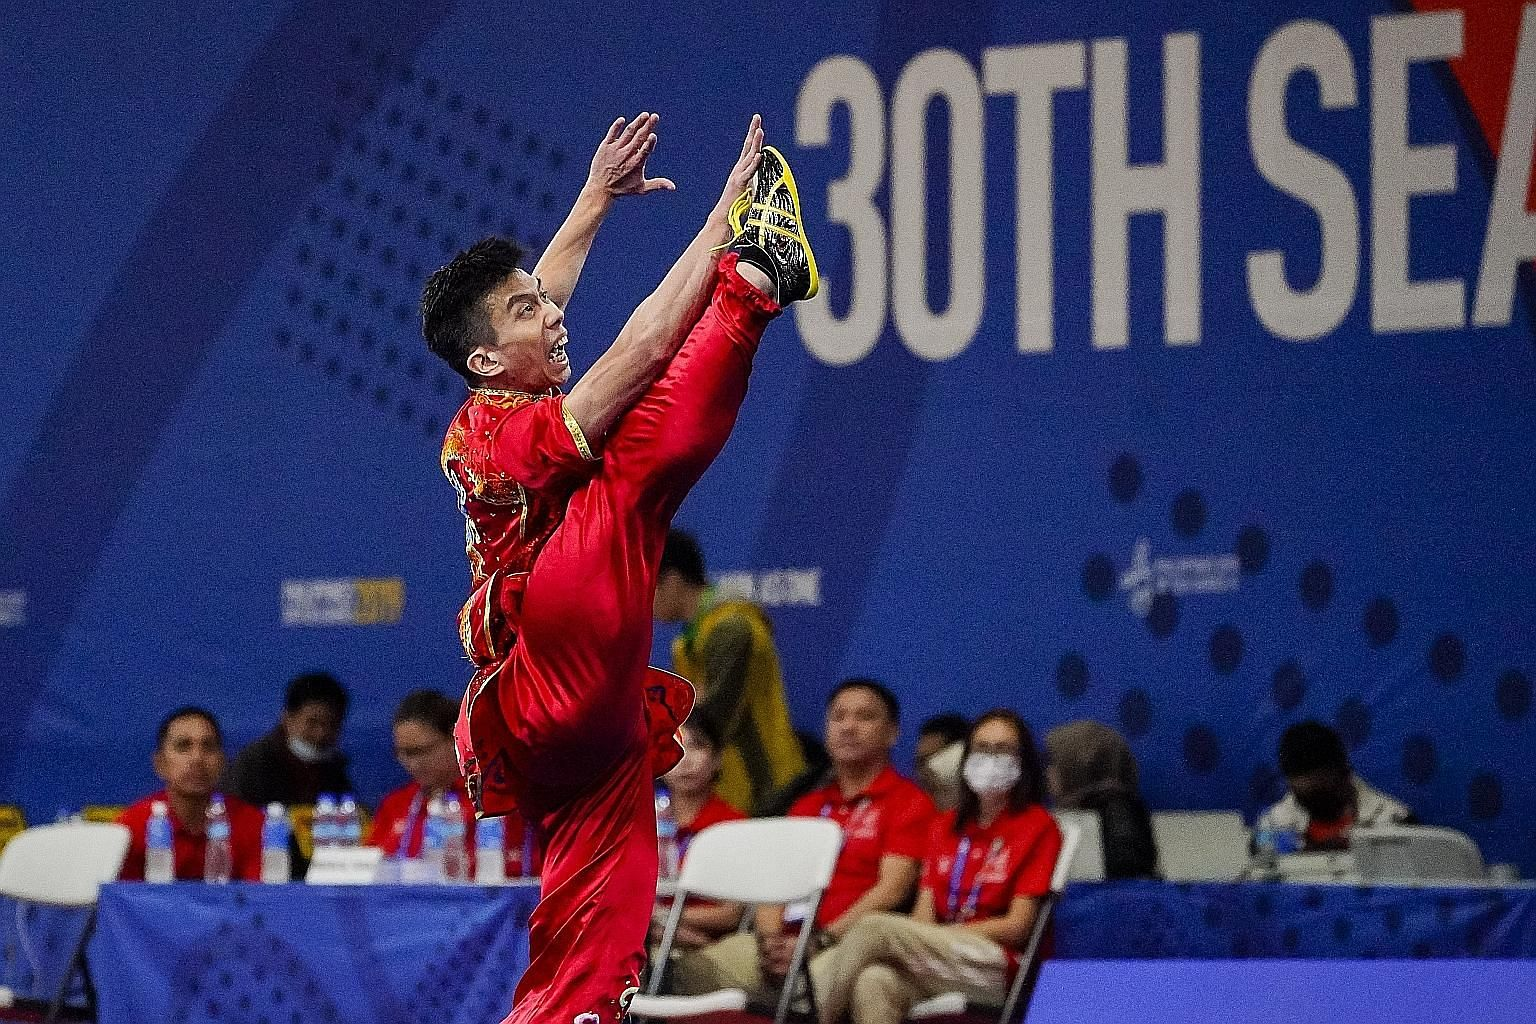 Yong Yi Xiang's gold-medal display in the men's changquan event has boosted his confidence after a disappointing World Wushu Championships.